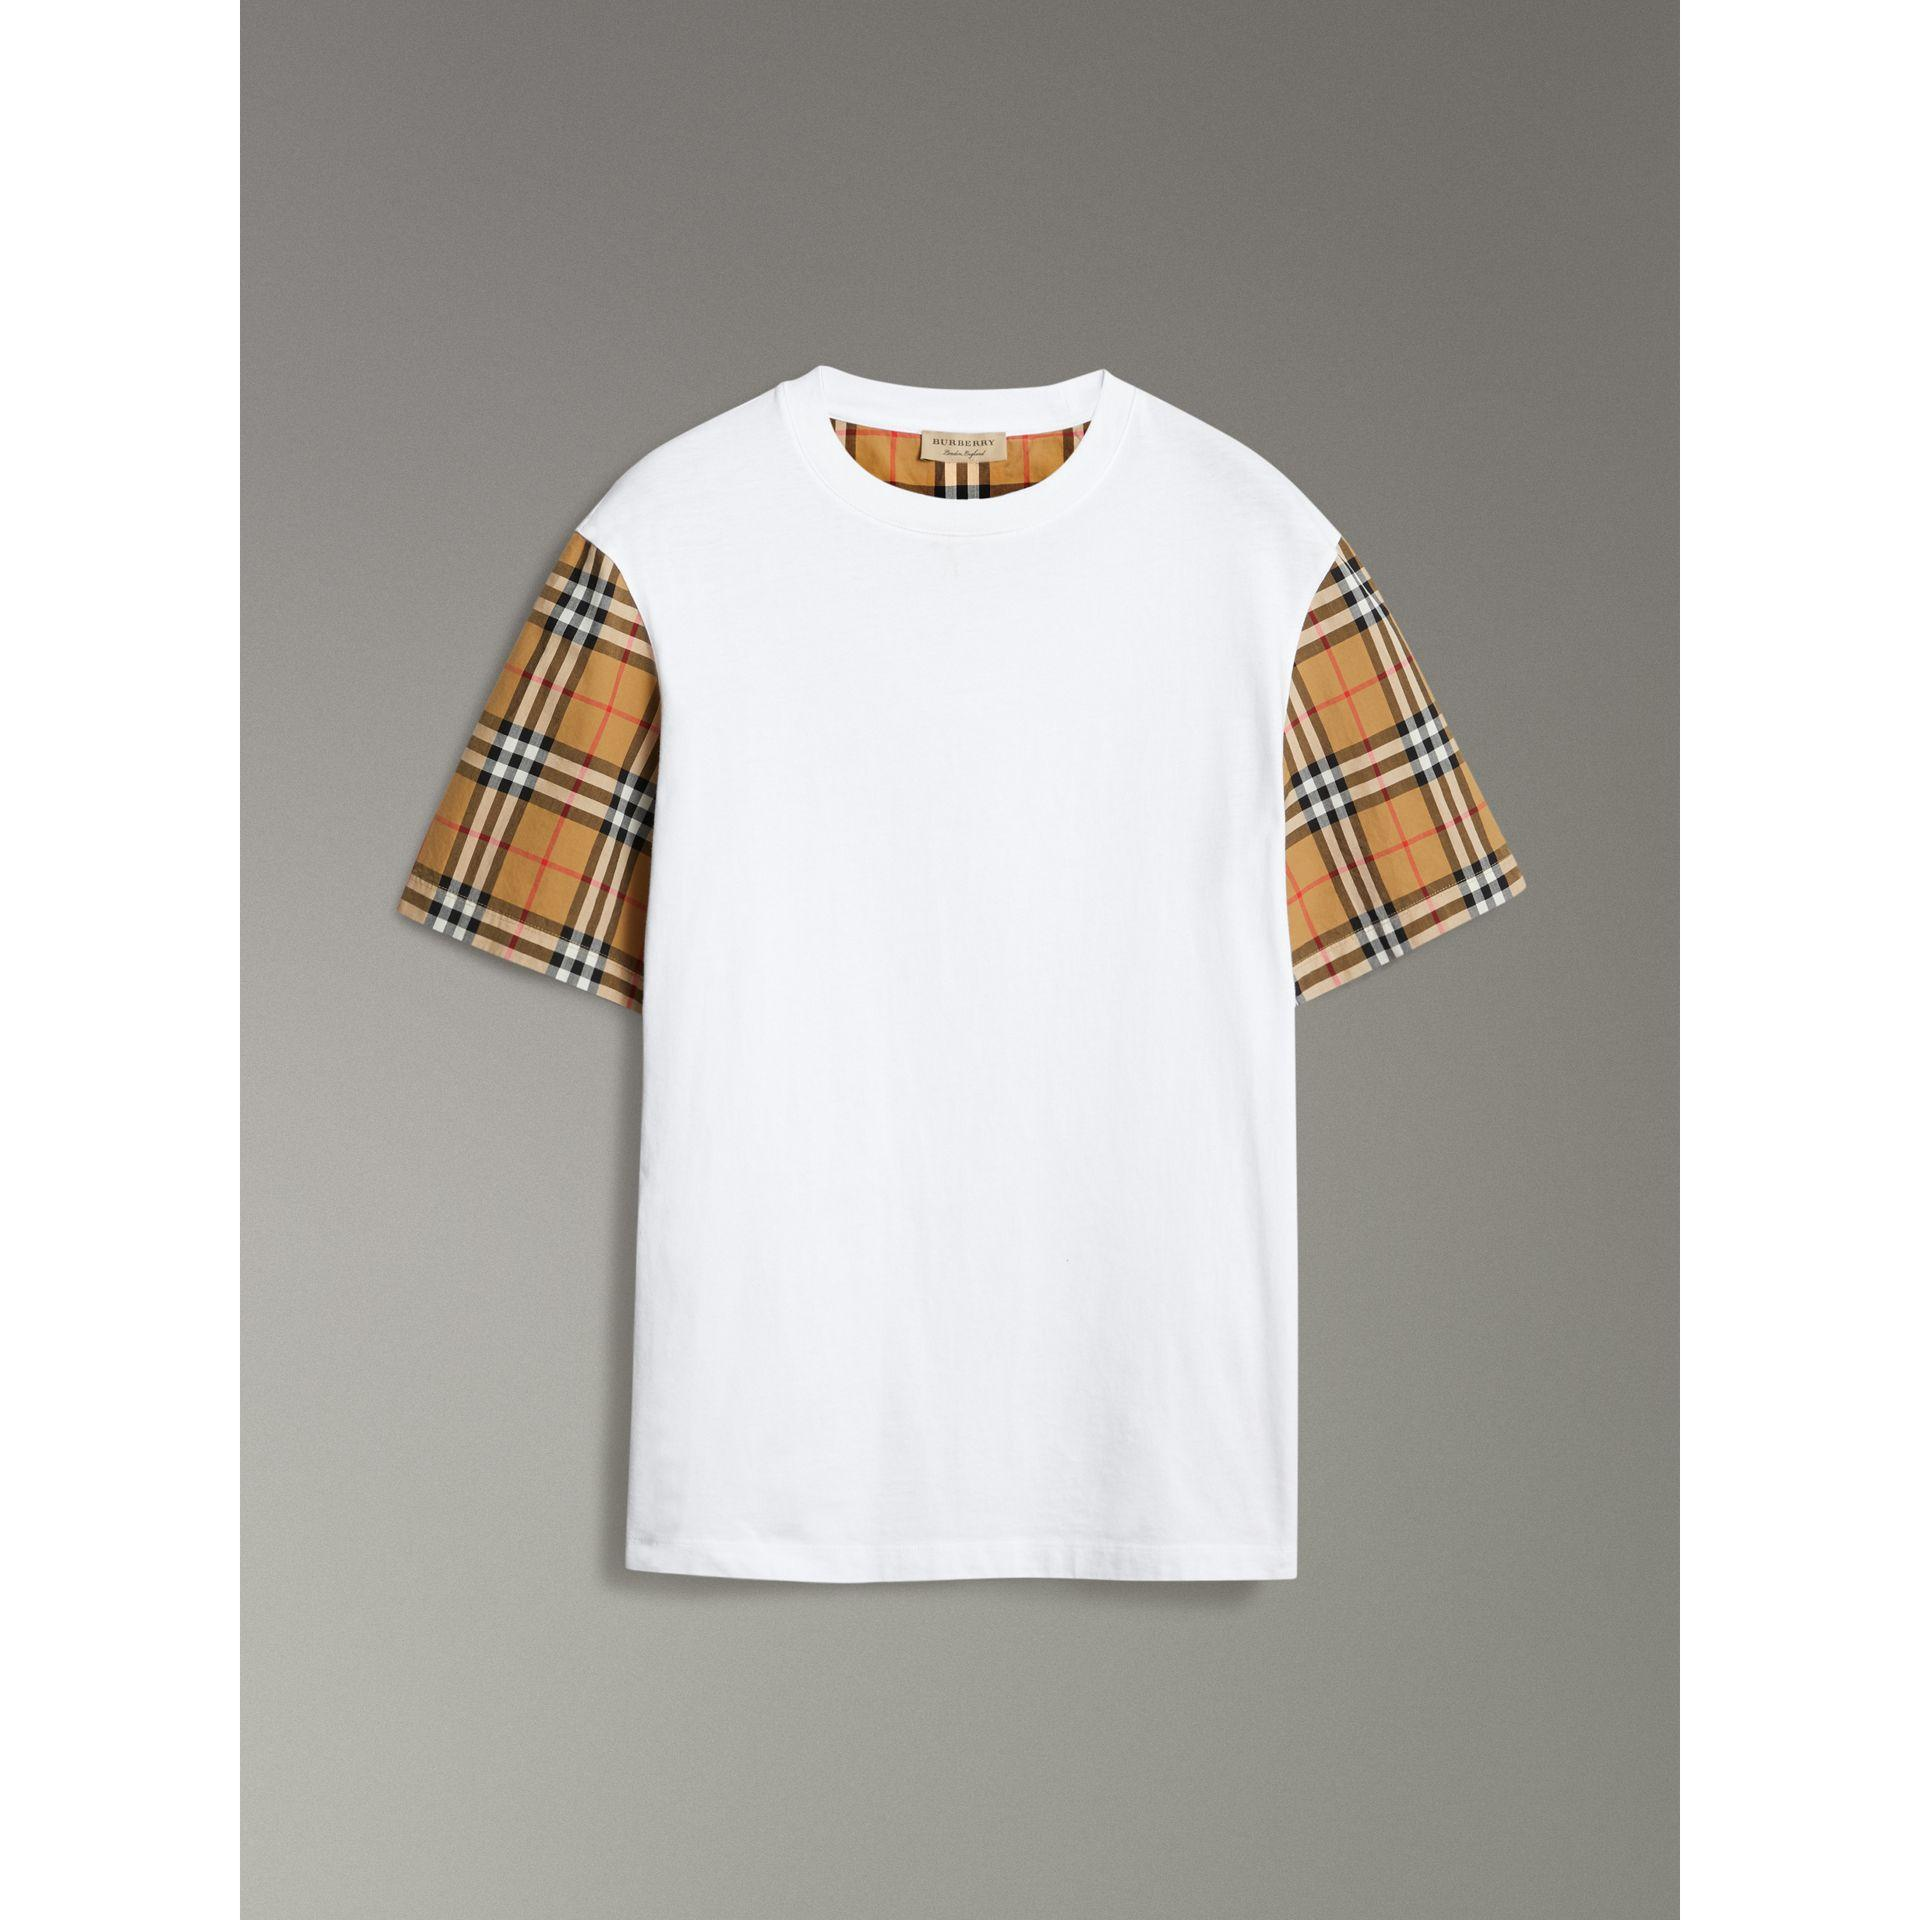 fec505a37677 Burberry Vintage Check Sleeve Cotton Oversized T-Shirt In White ...